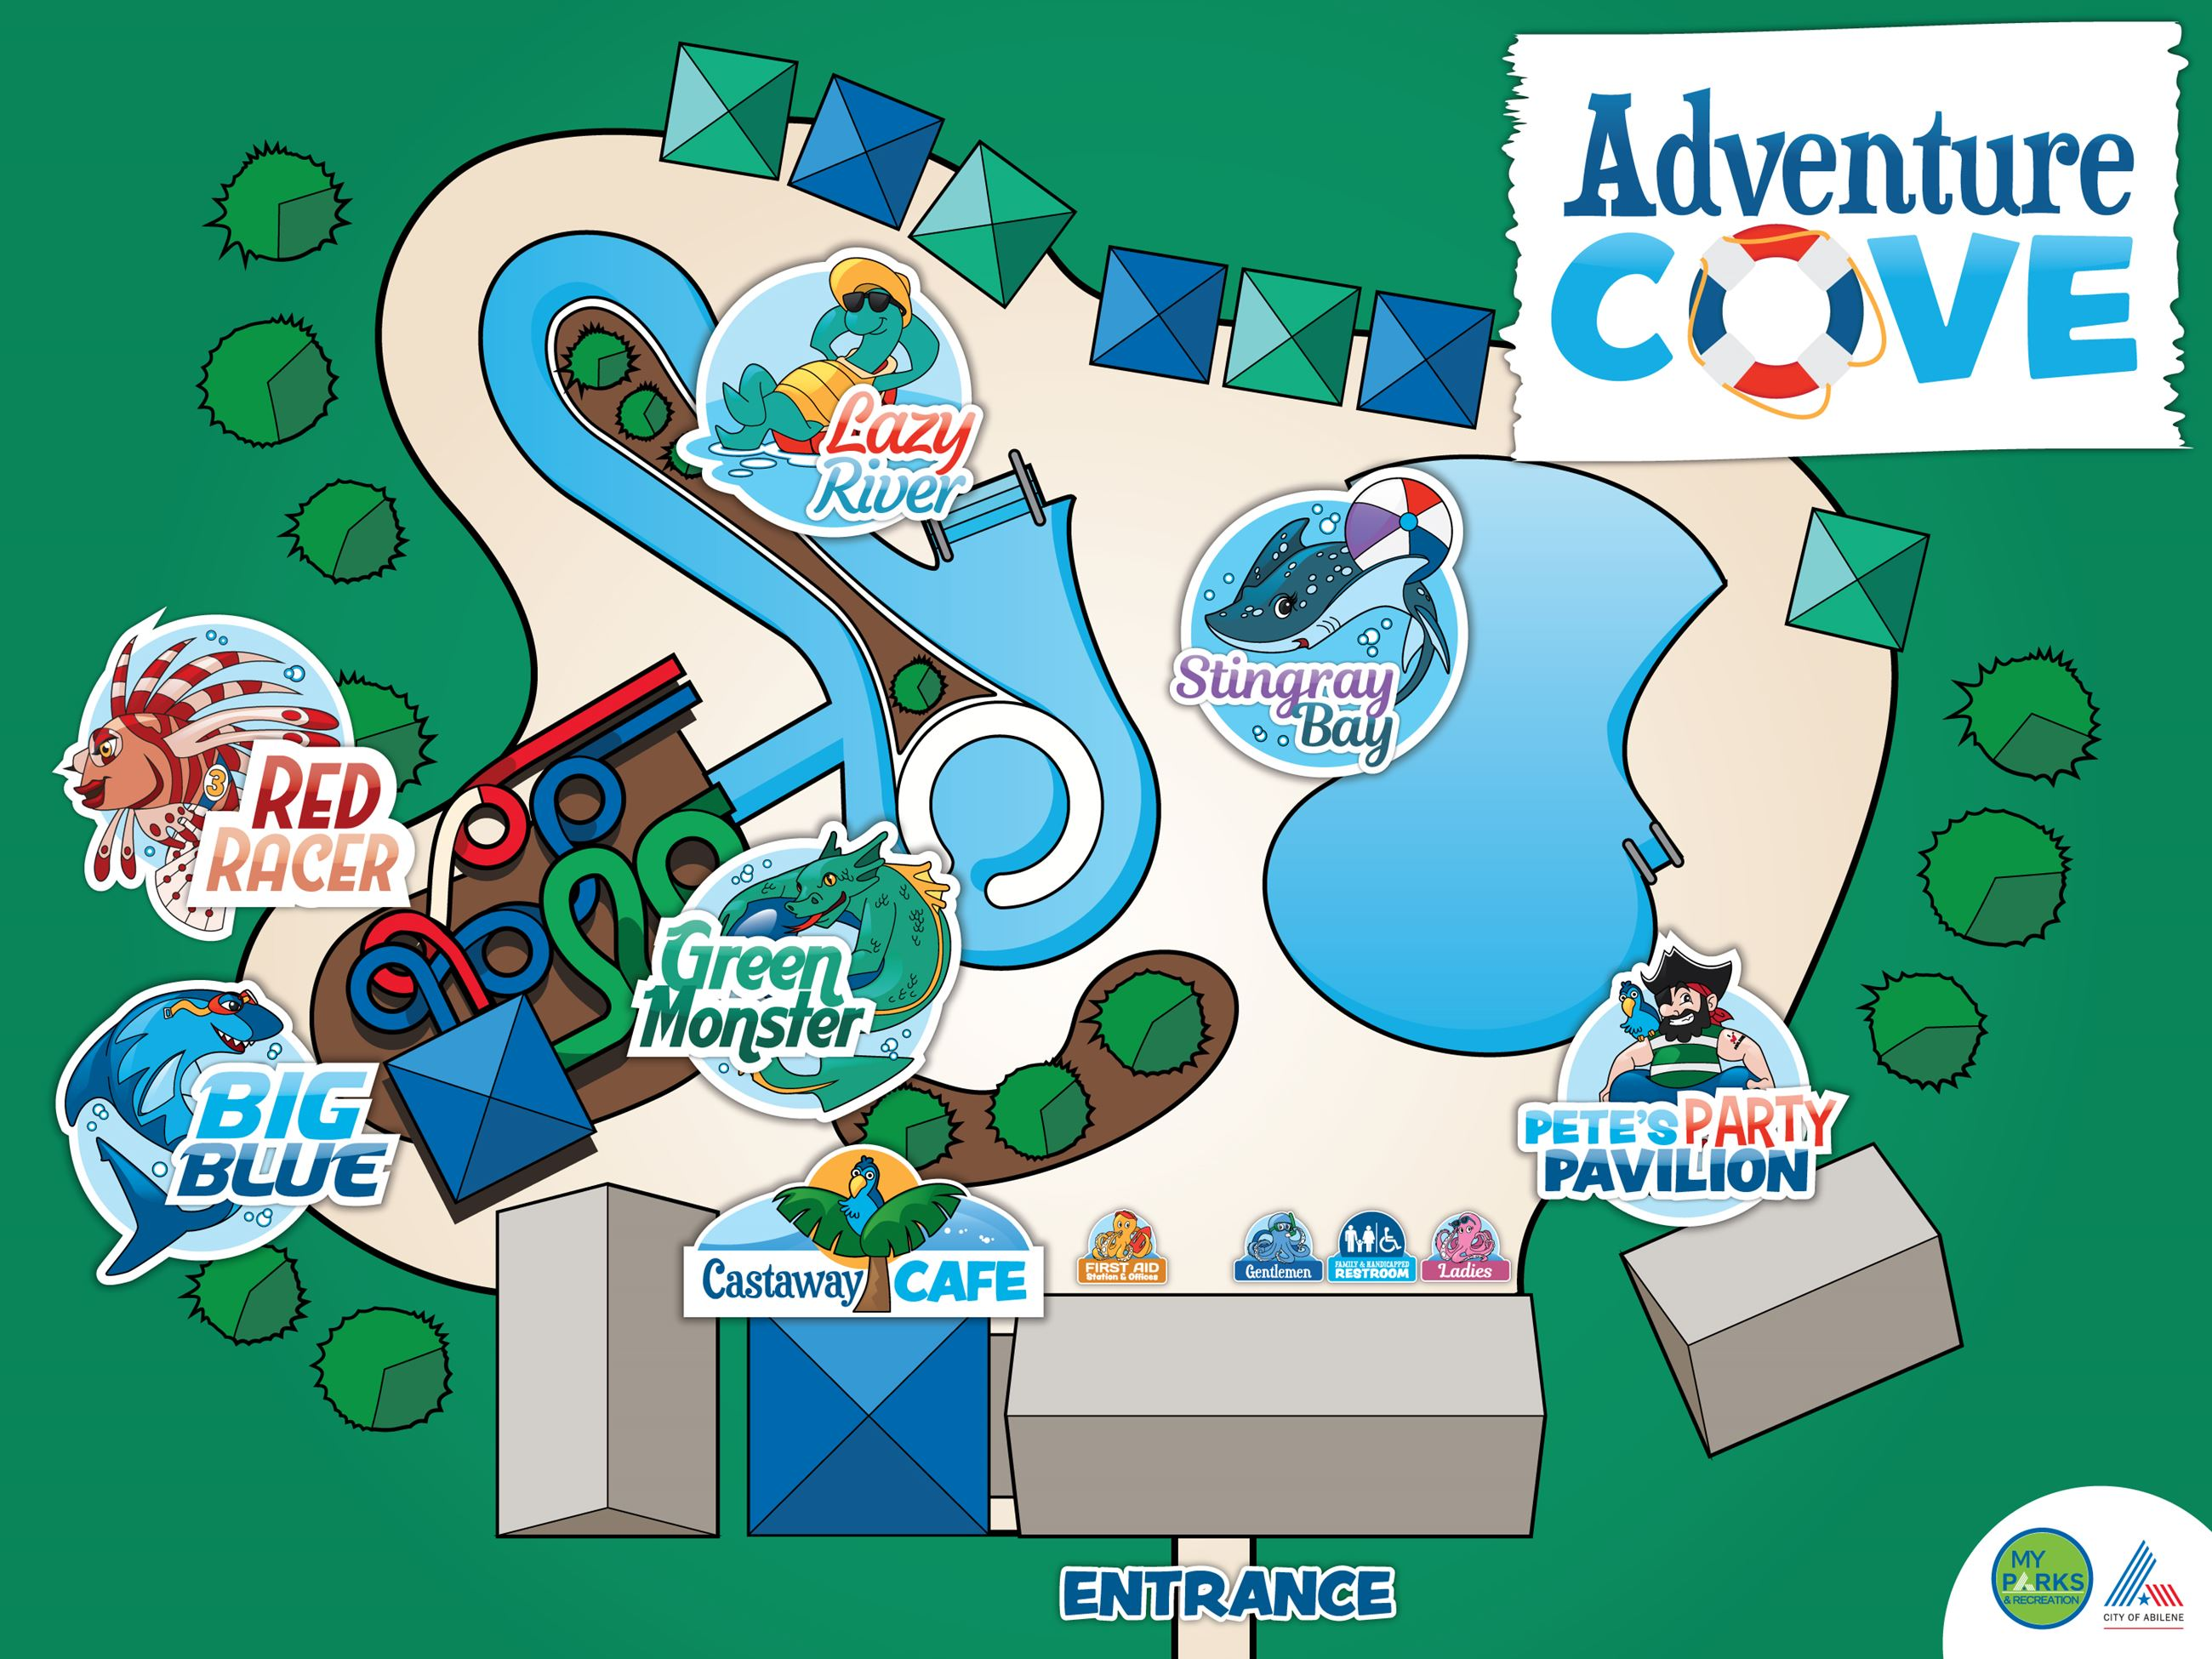 Adventure Cove Map Opens in new window